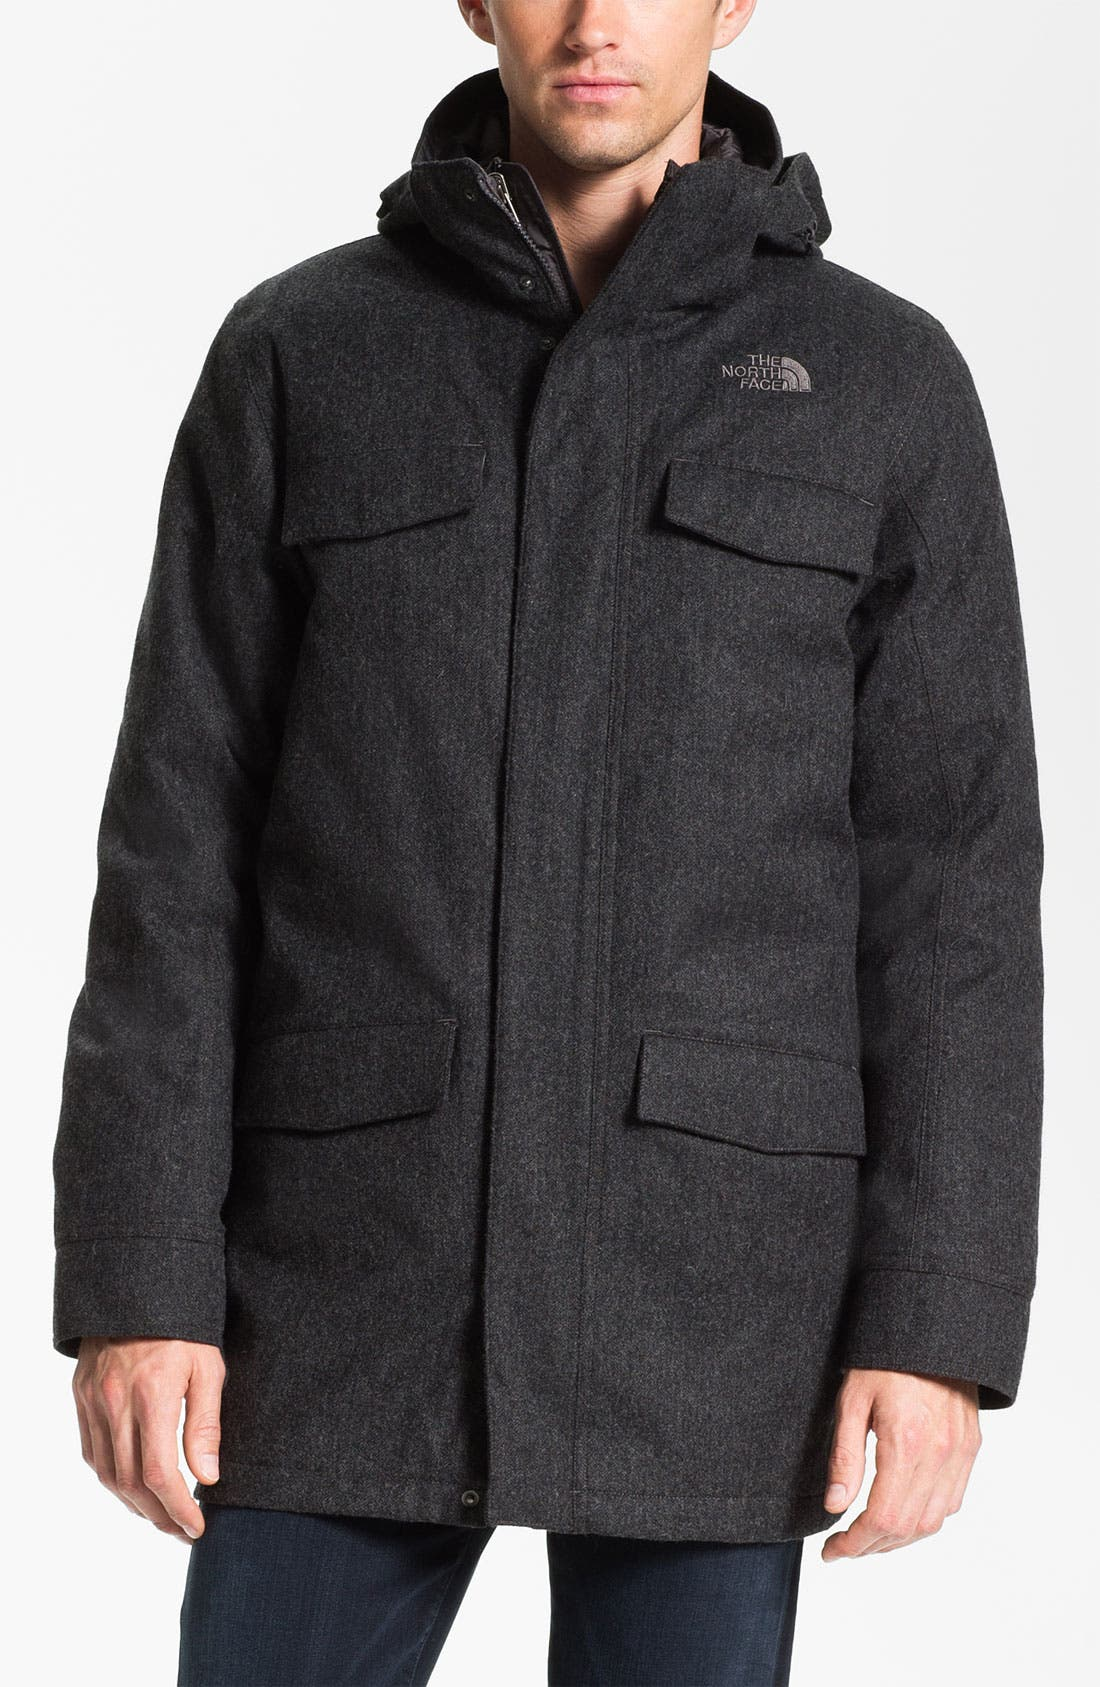 Main Image - The North Face 'Harper' TriClimate® 3-in-1 Jacket